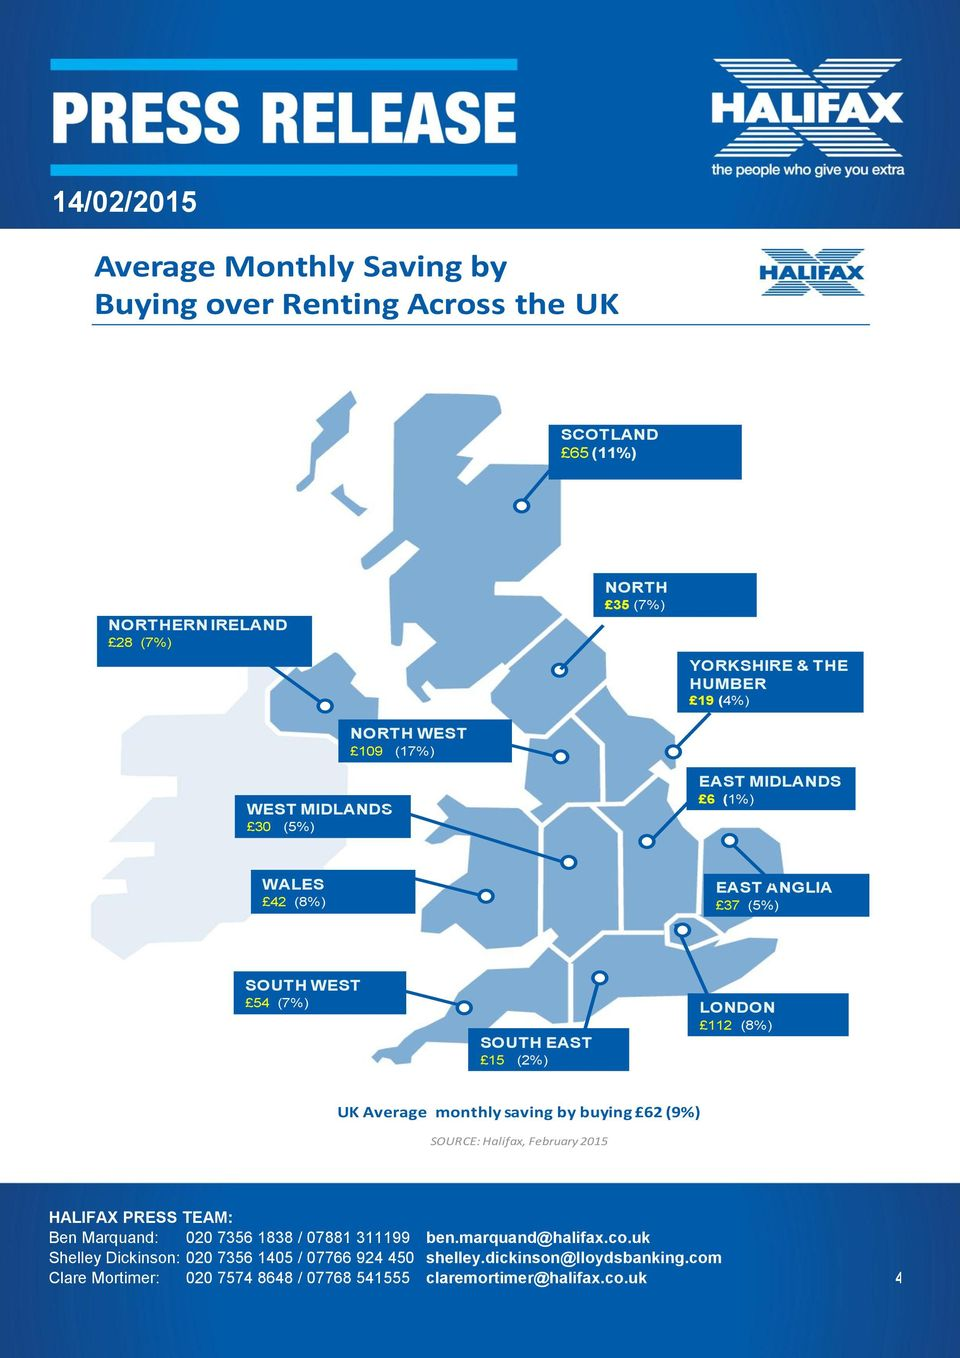 (8%) EAST ANGLIA 37 (5%) SOUTH WEST 54 (7%) SOUTH EAST 15 (2%) LONDON 112 (8%) UK Average monthly saving by